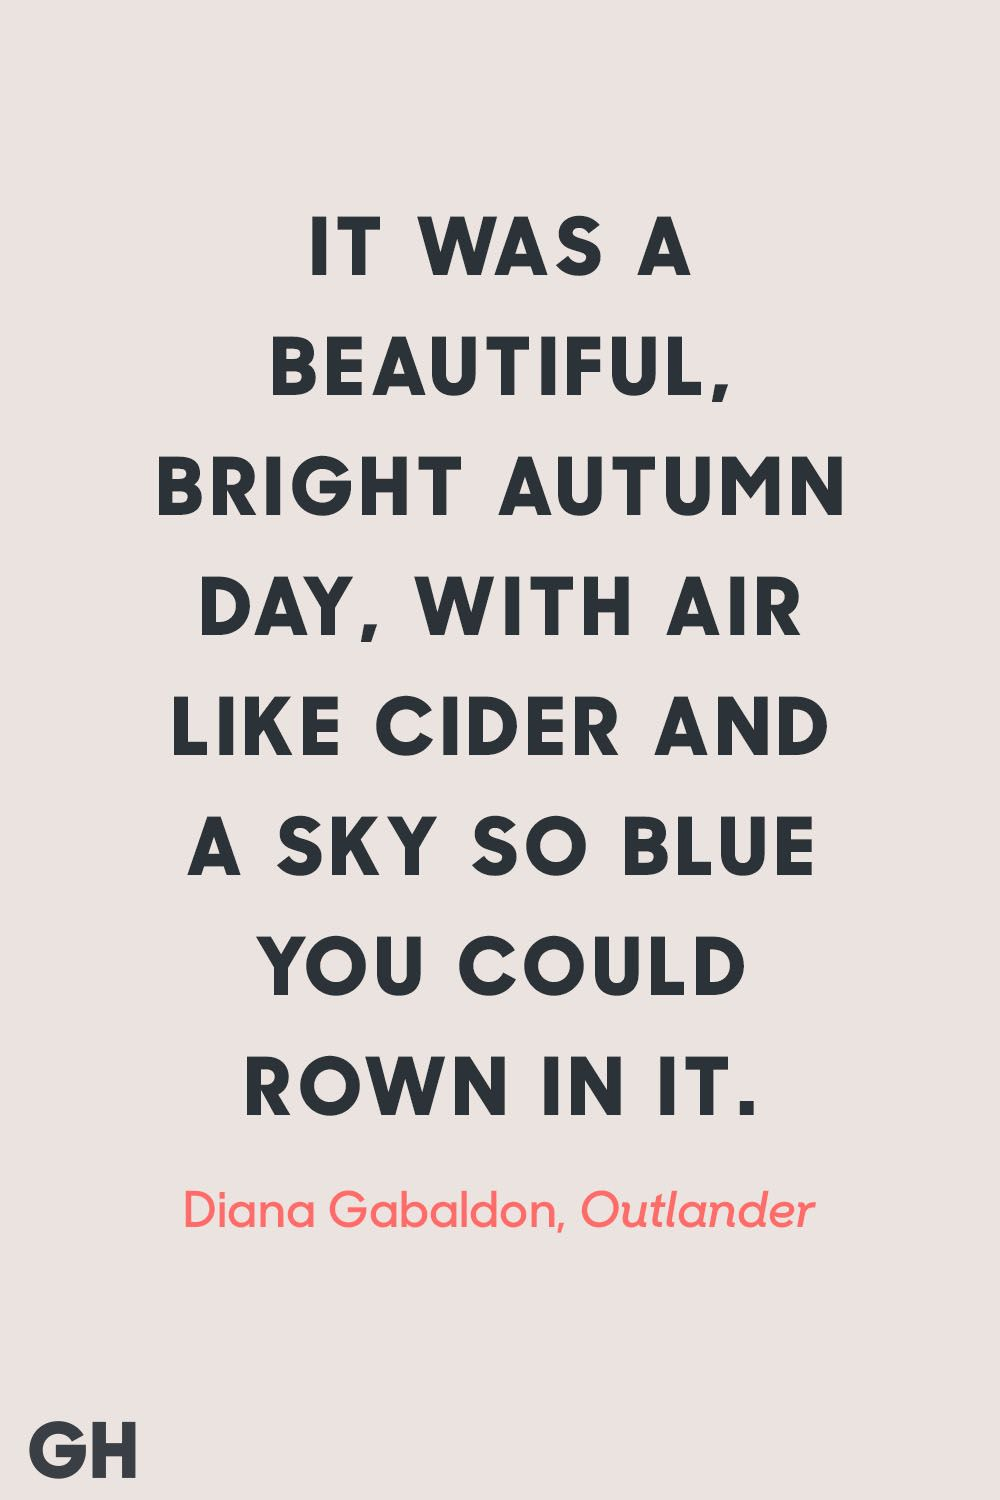 diana gabaldon, 'outlander' fall quotes